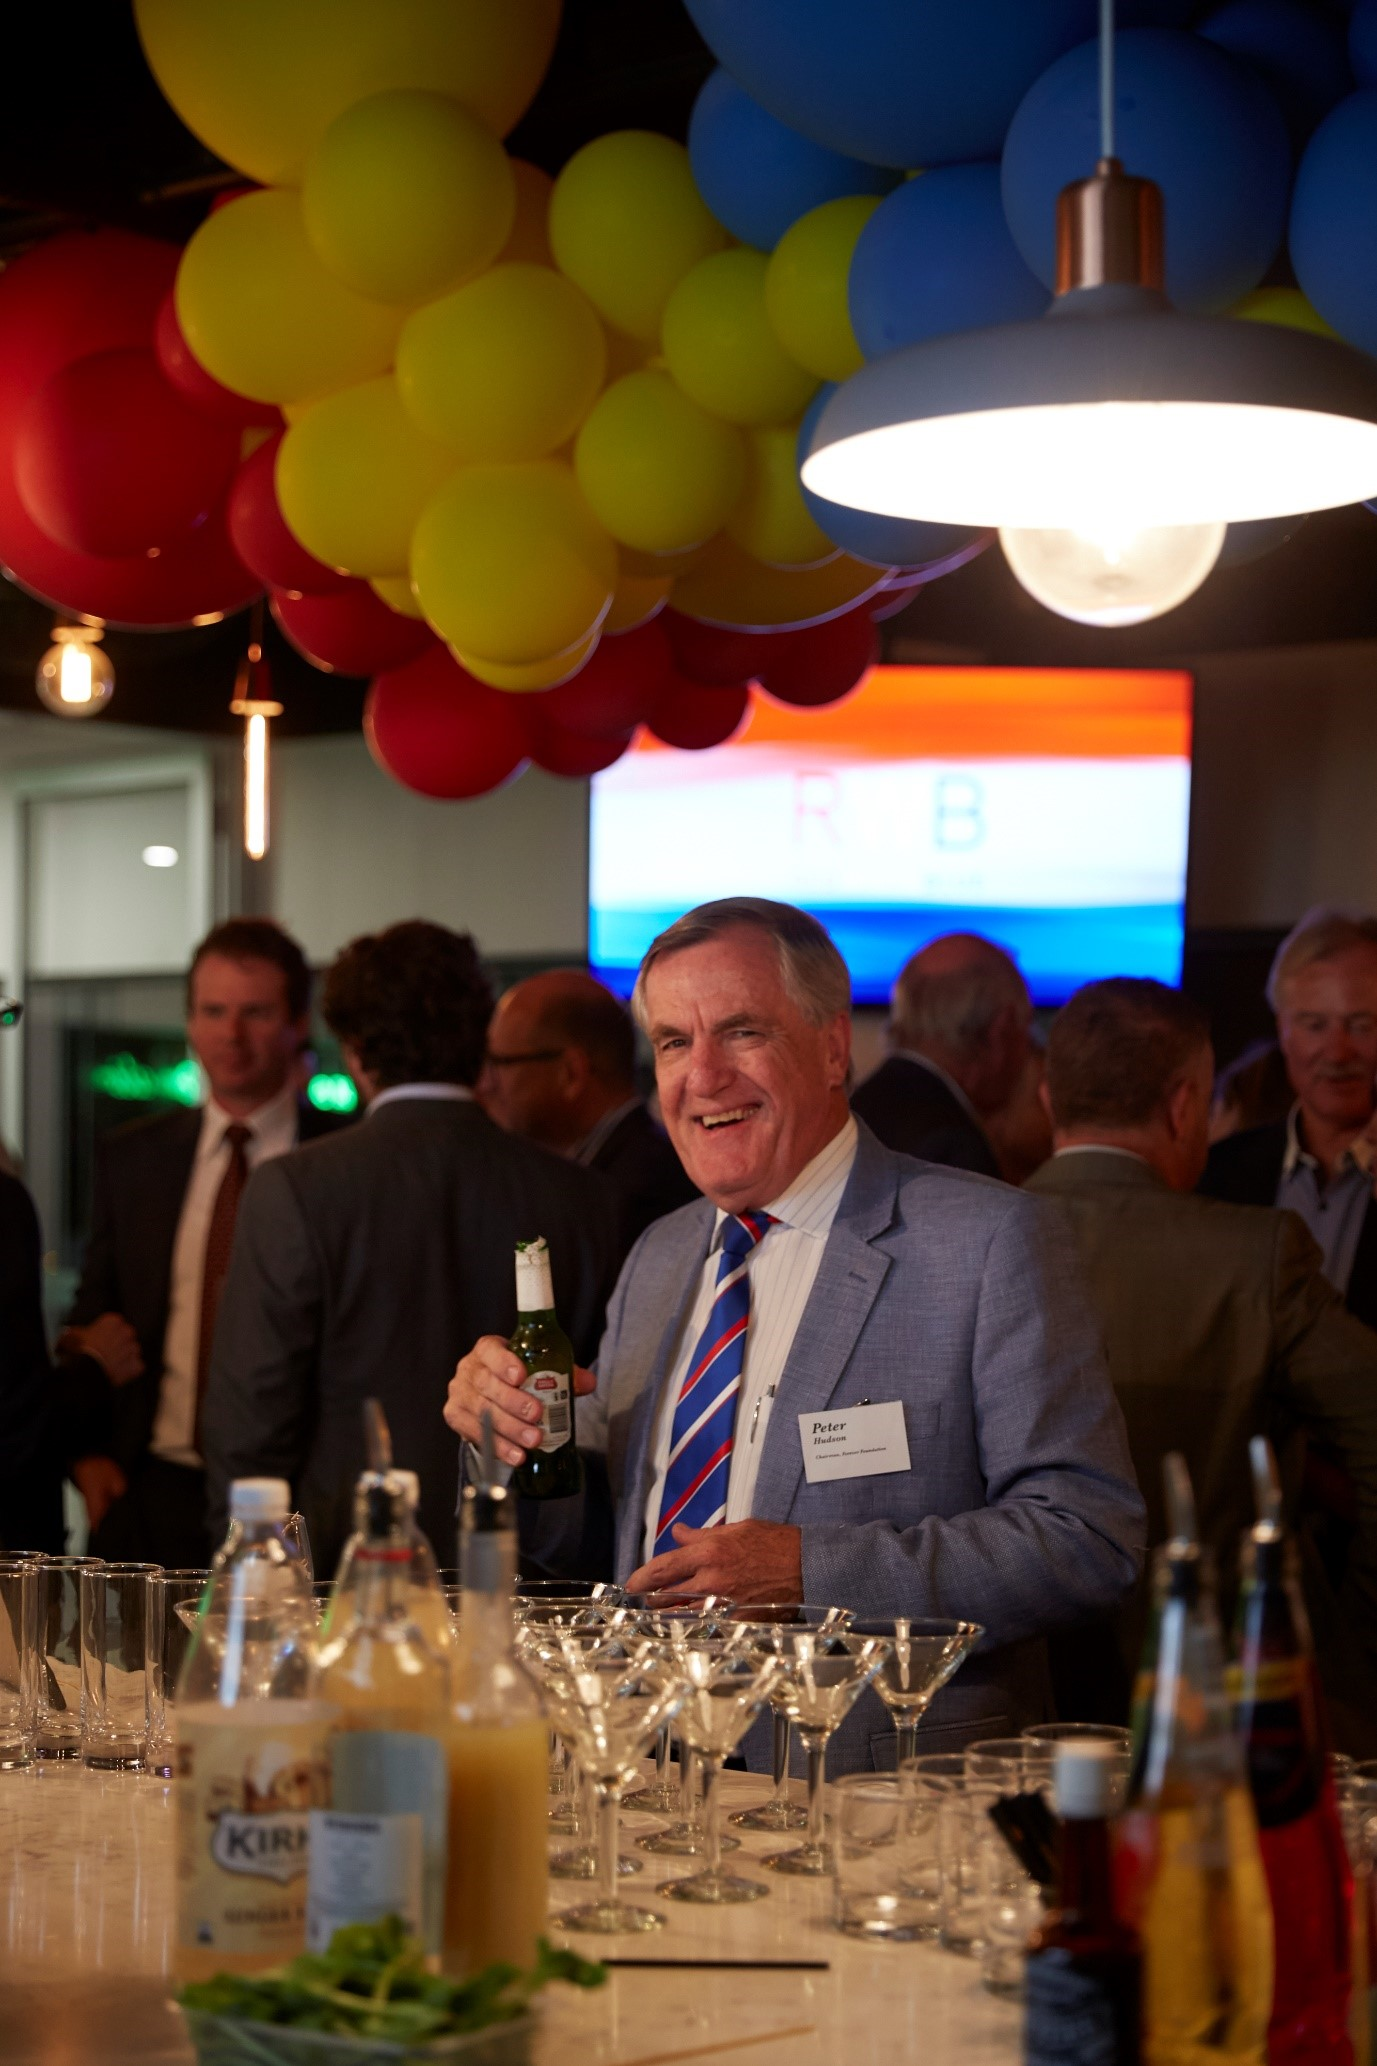 Chairman Peter Hudson invites you to the next RWB function on August 1st!